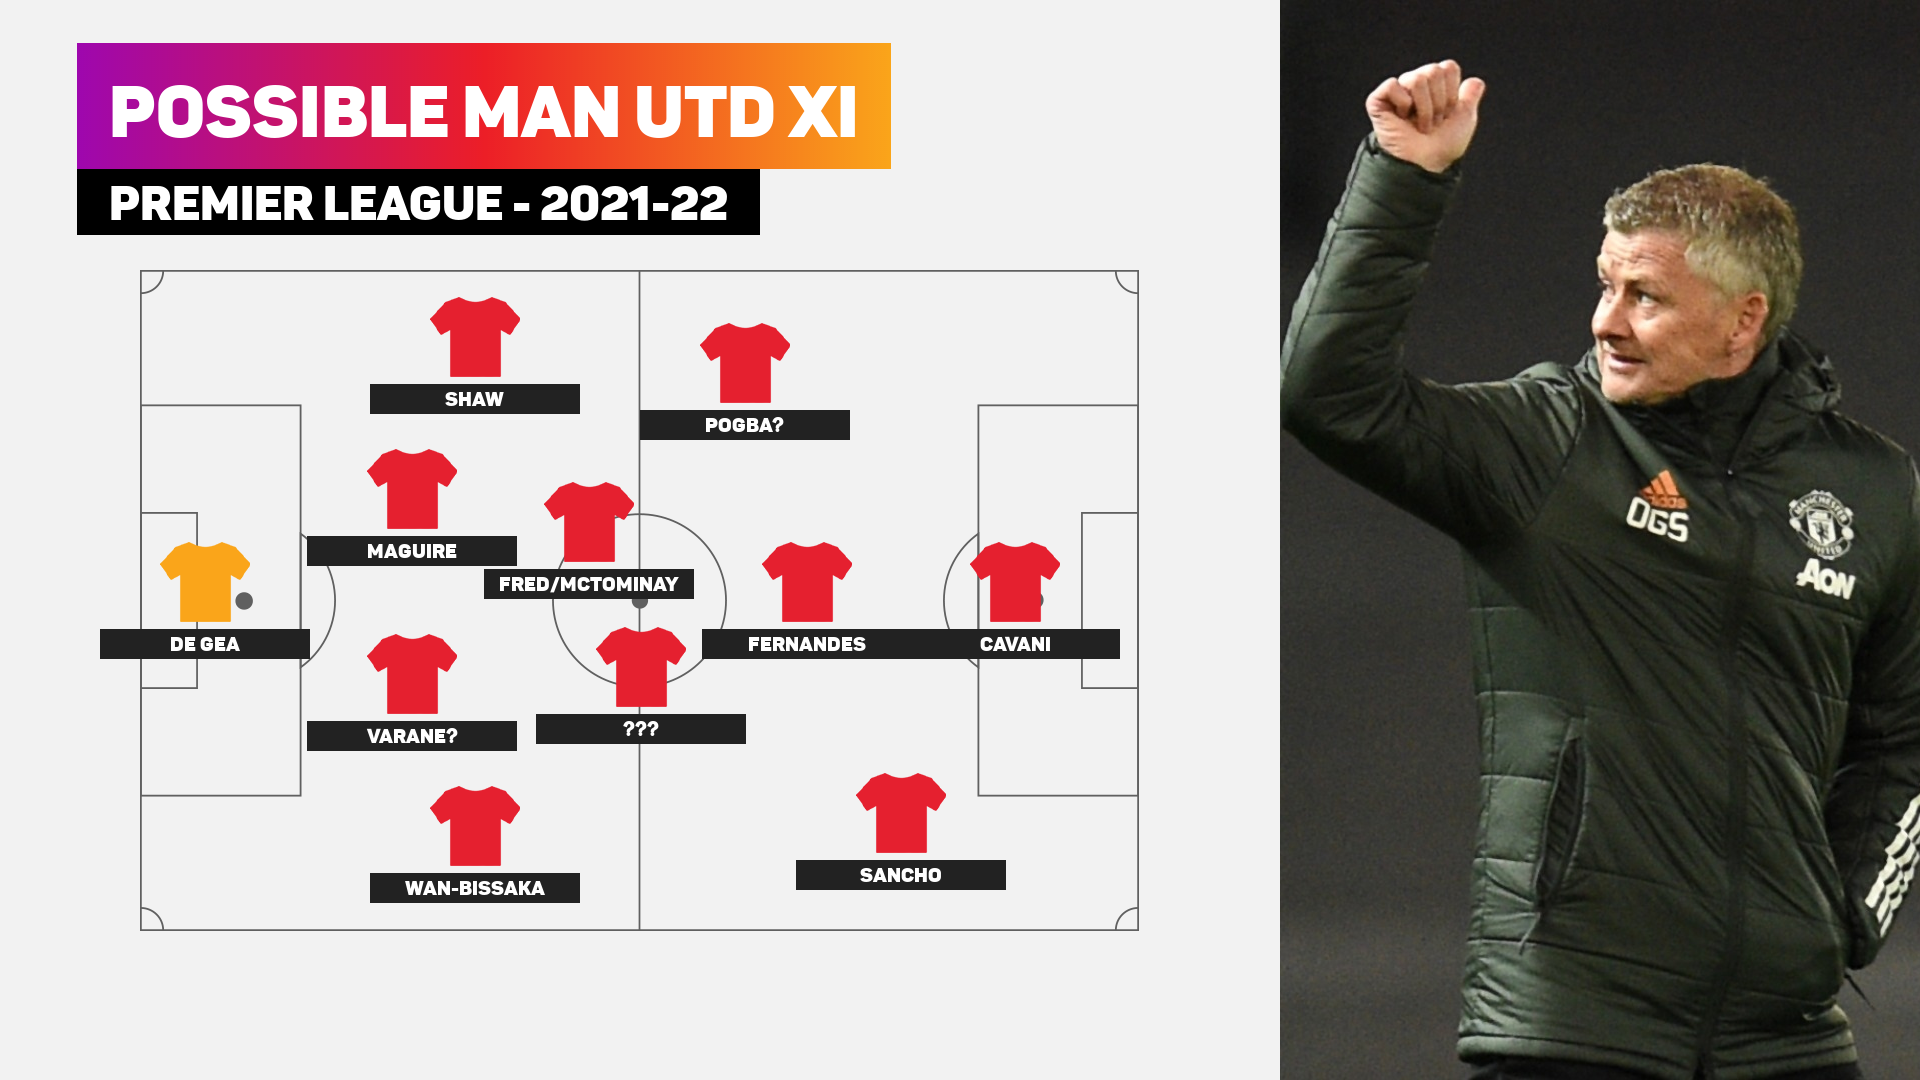 How will Man Utd line up in 2021-22?